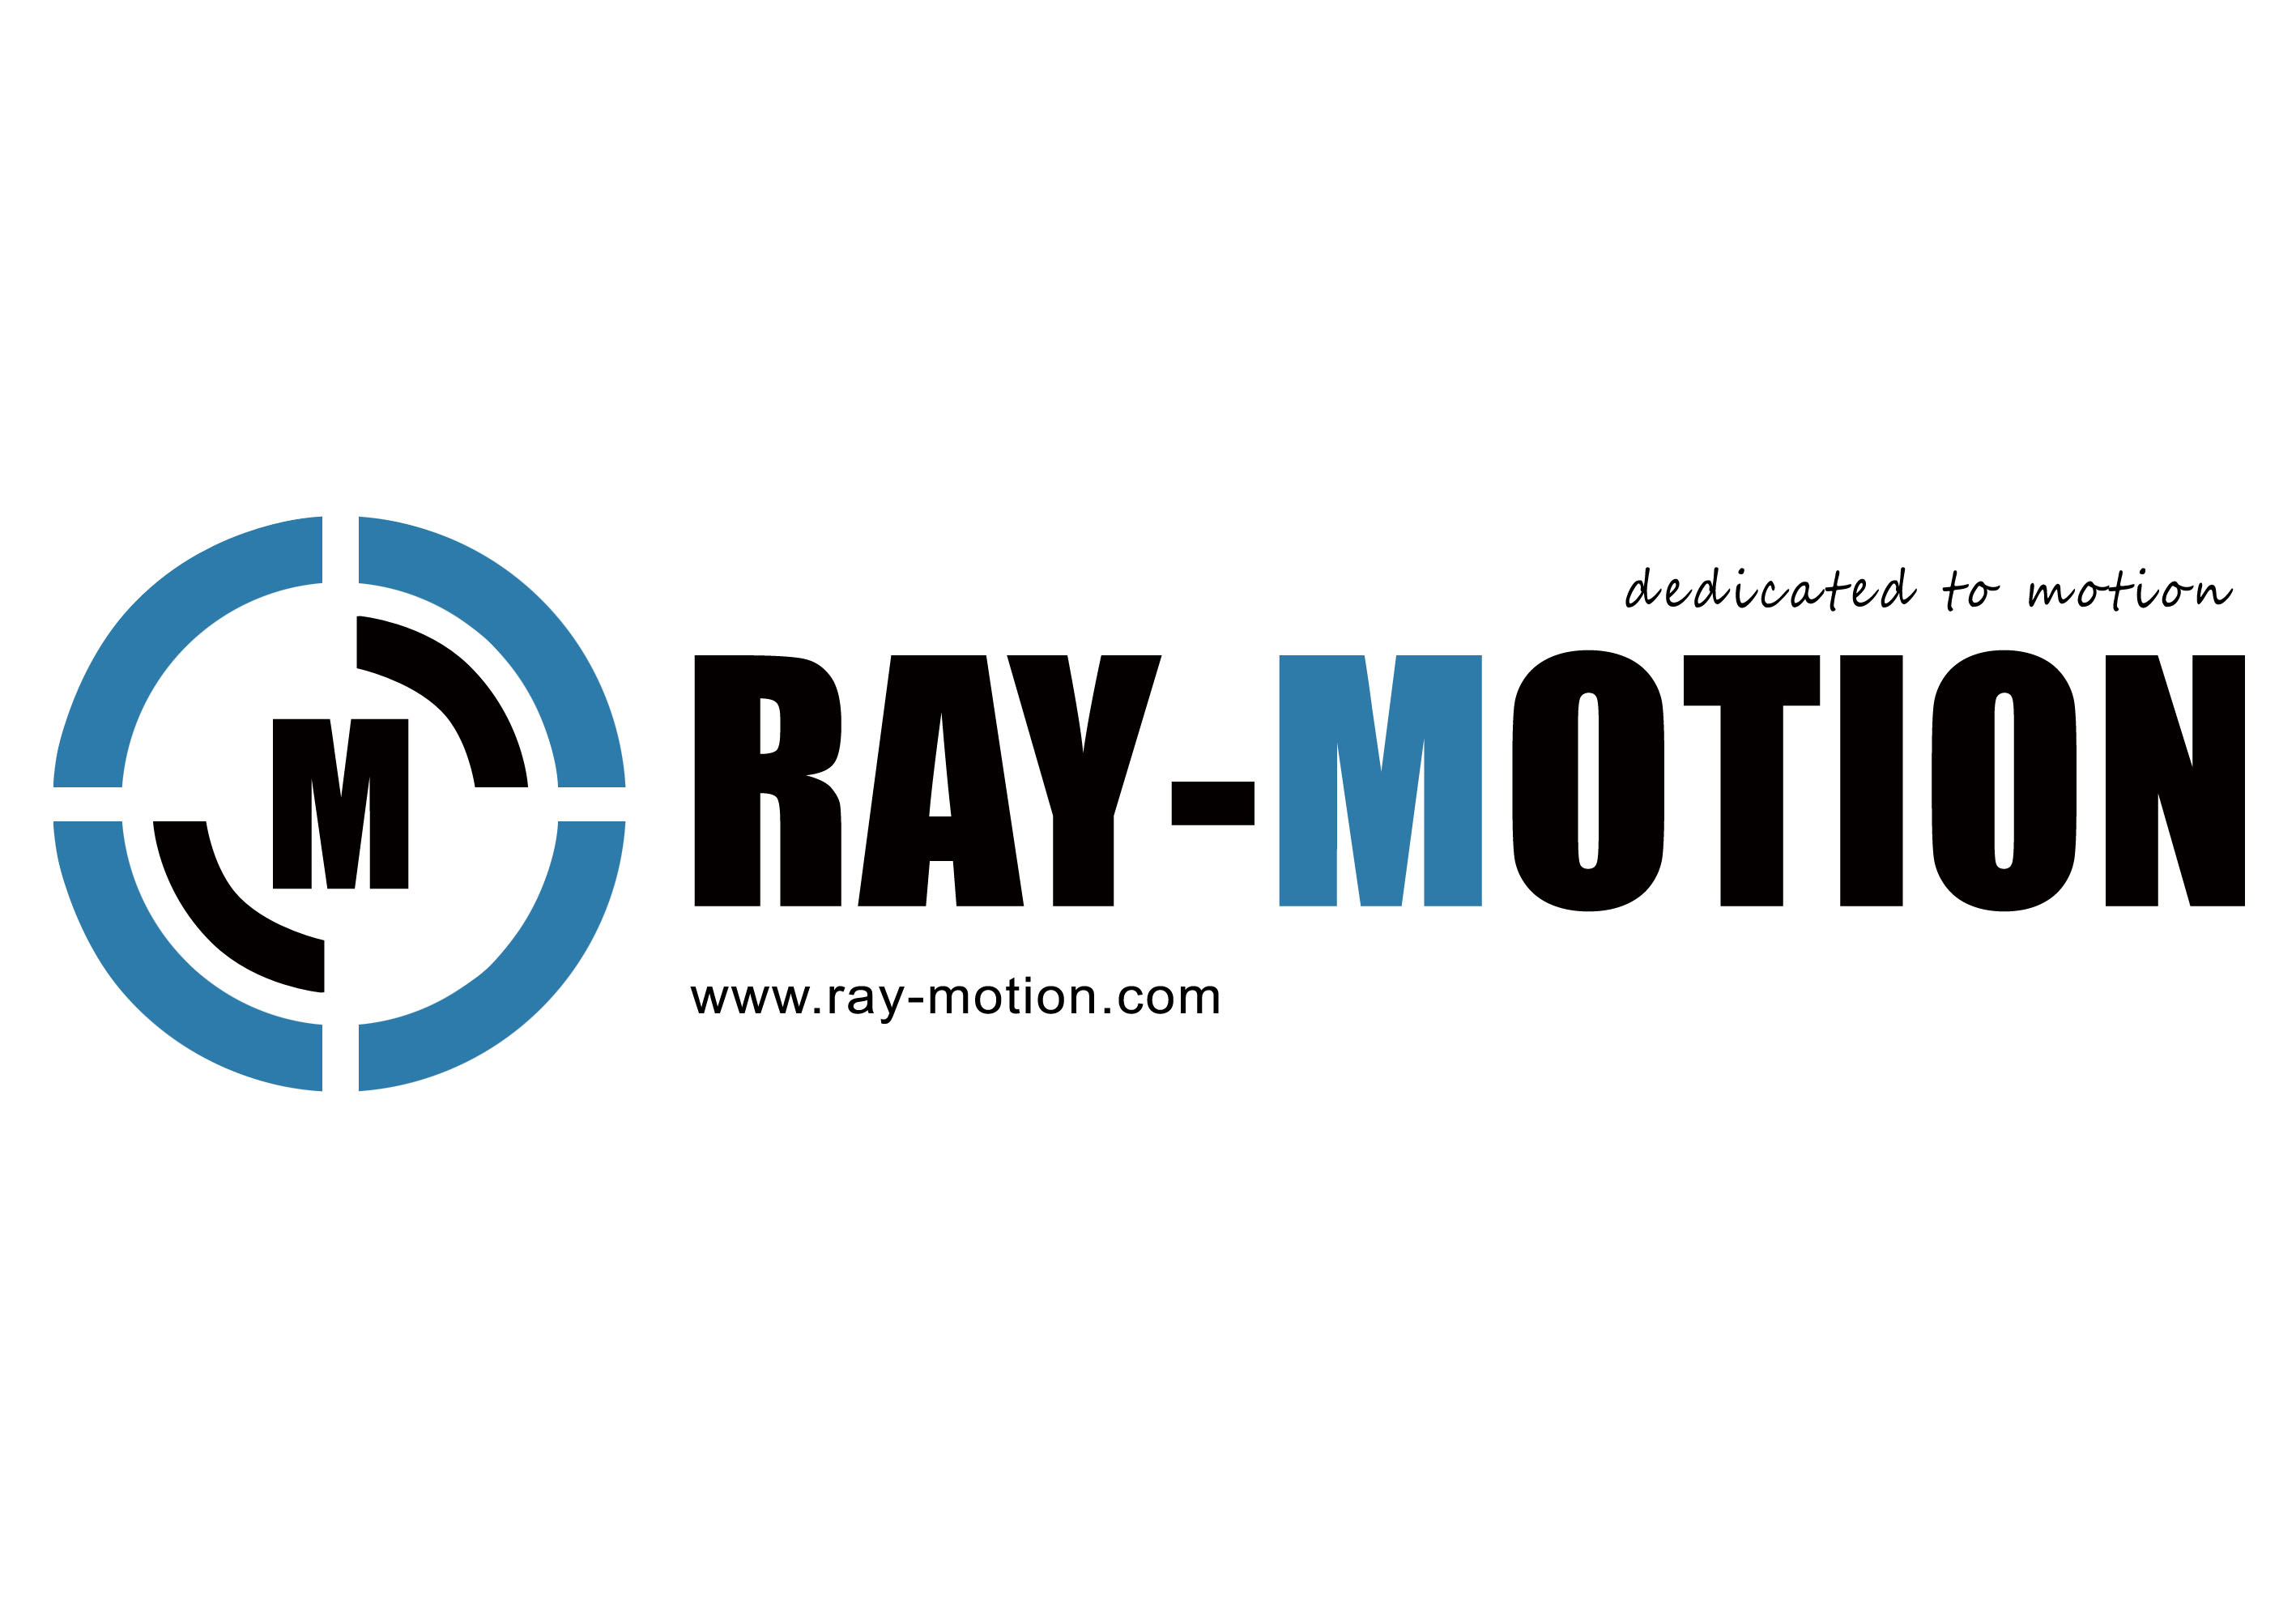 Ray-Motion - galvanometers, 1D/2D/3D scanners